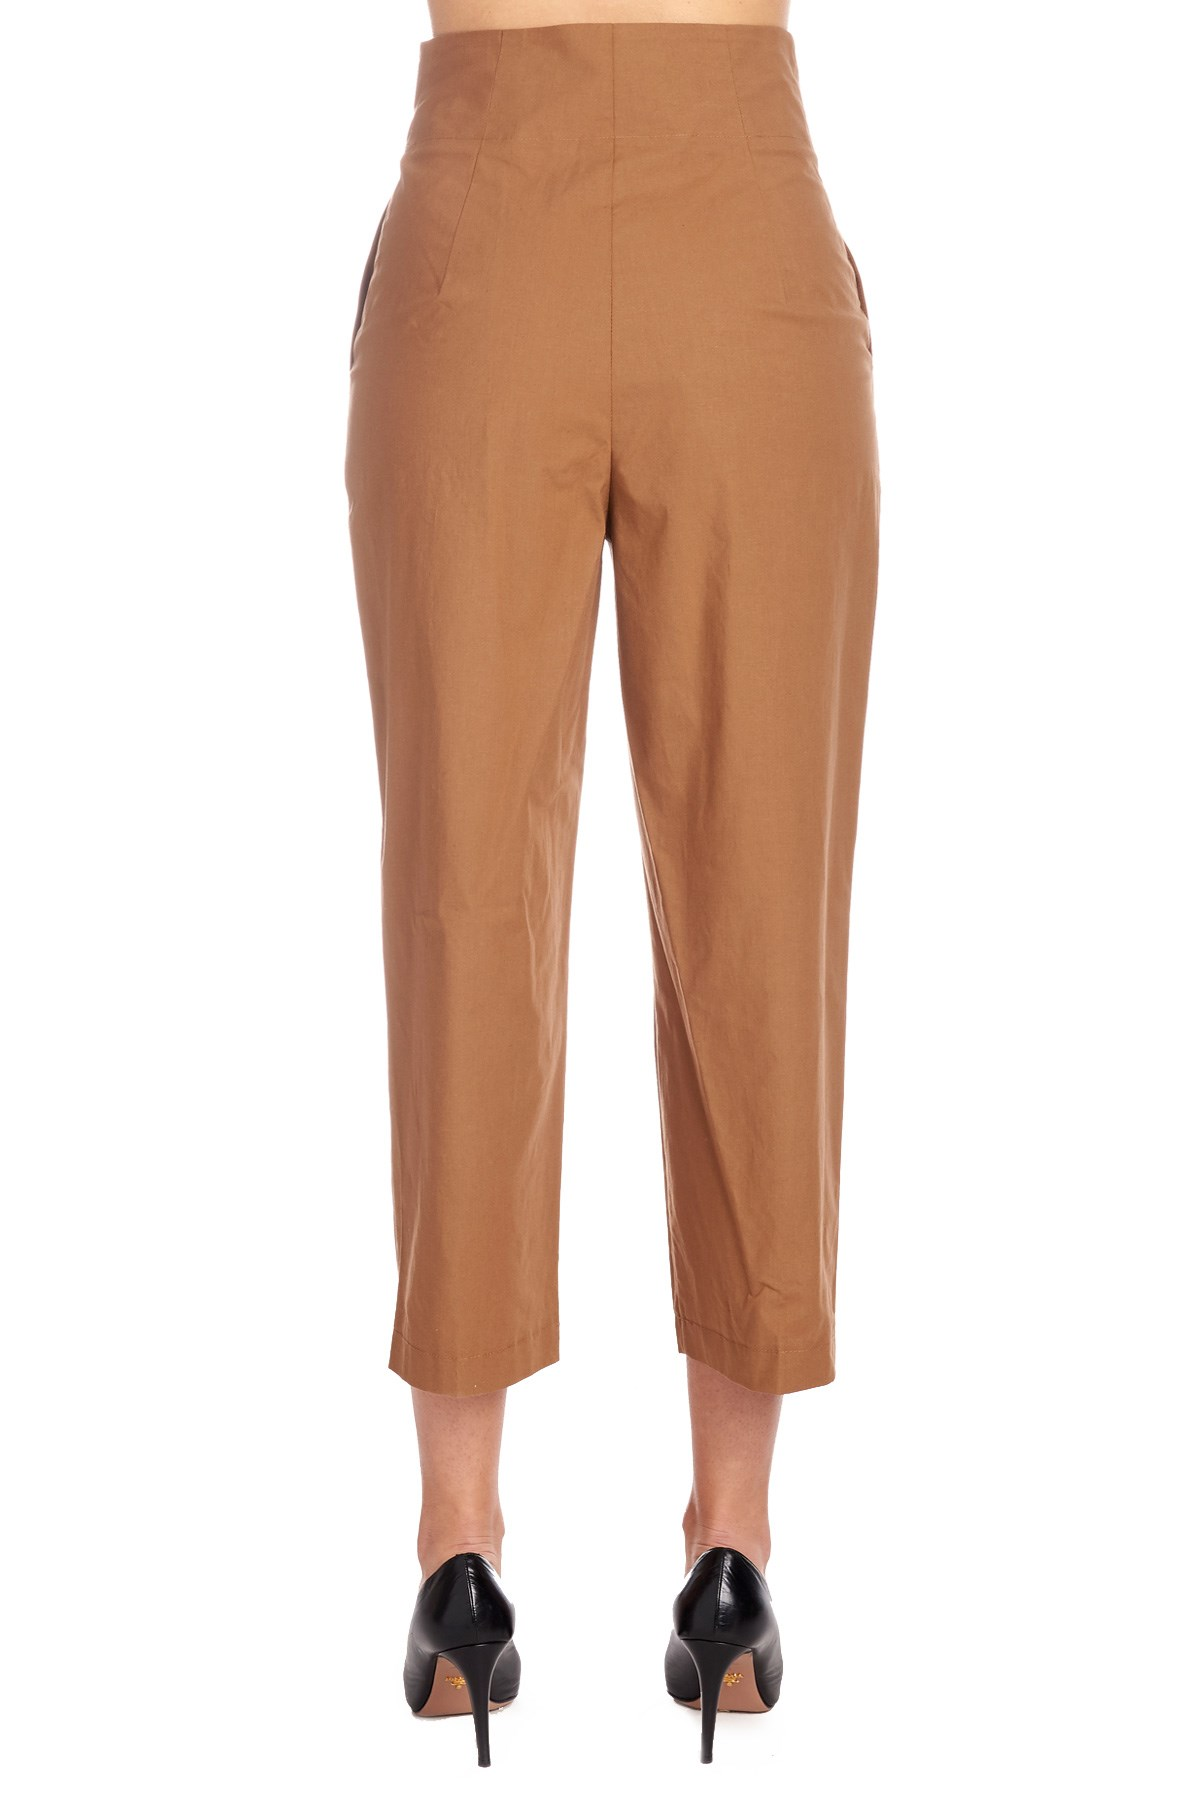 liu jo Pantalone classico available on julian-fashion.com - 68640 85e2236ee79